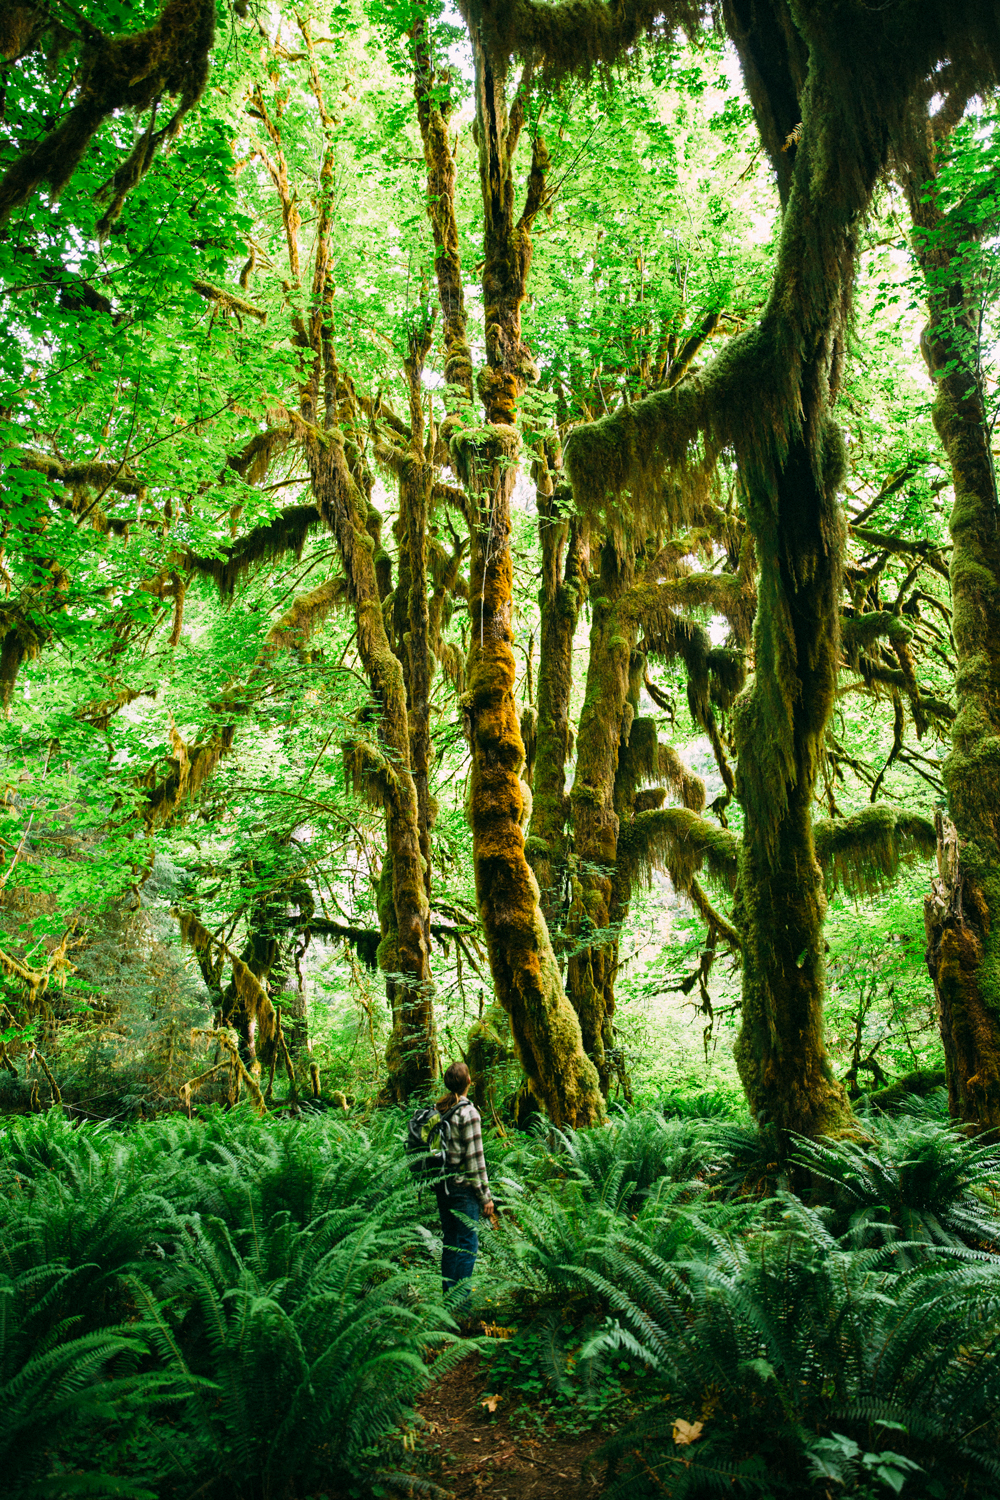 Hoh Rainforest Sonia Primerano